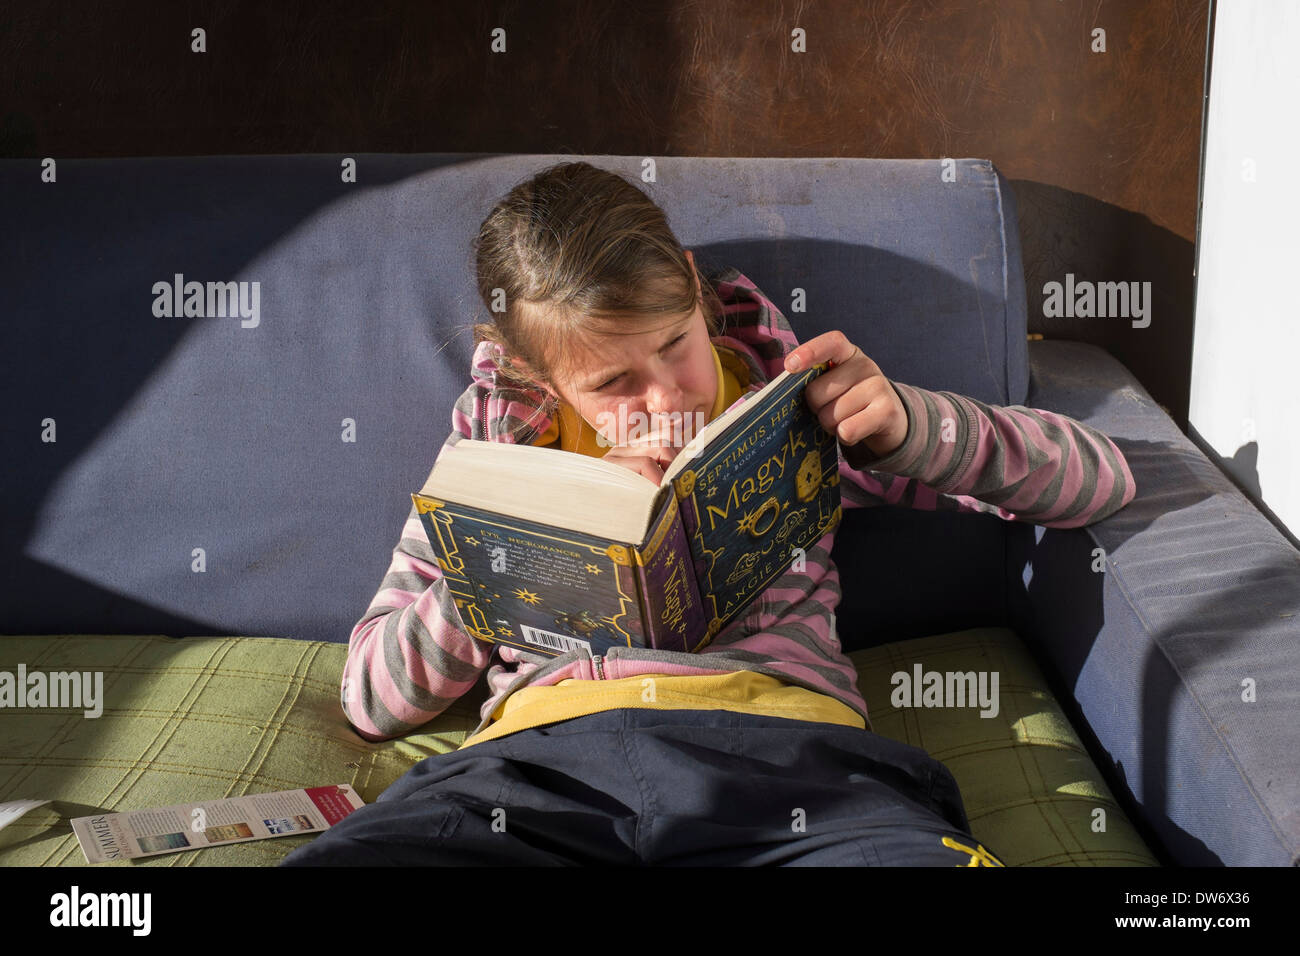 A child engrossed in reading a book on a couch - Stock Image